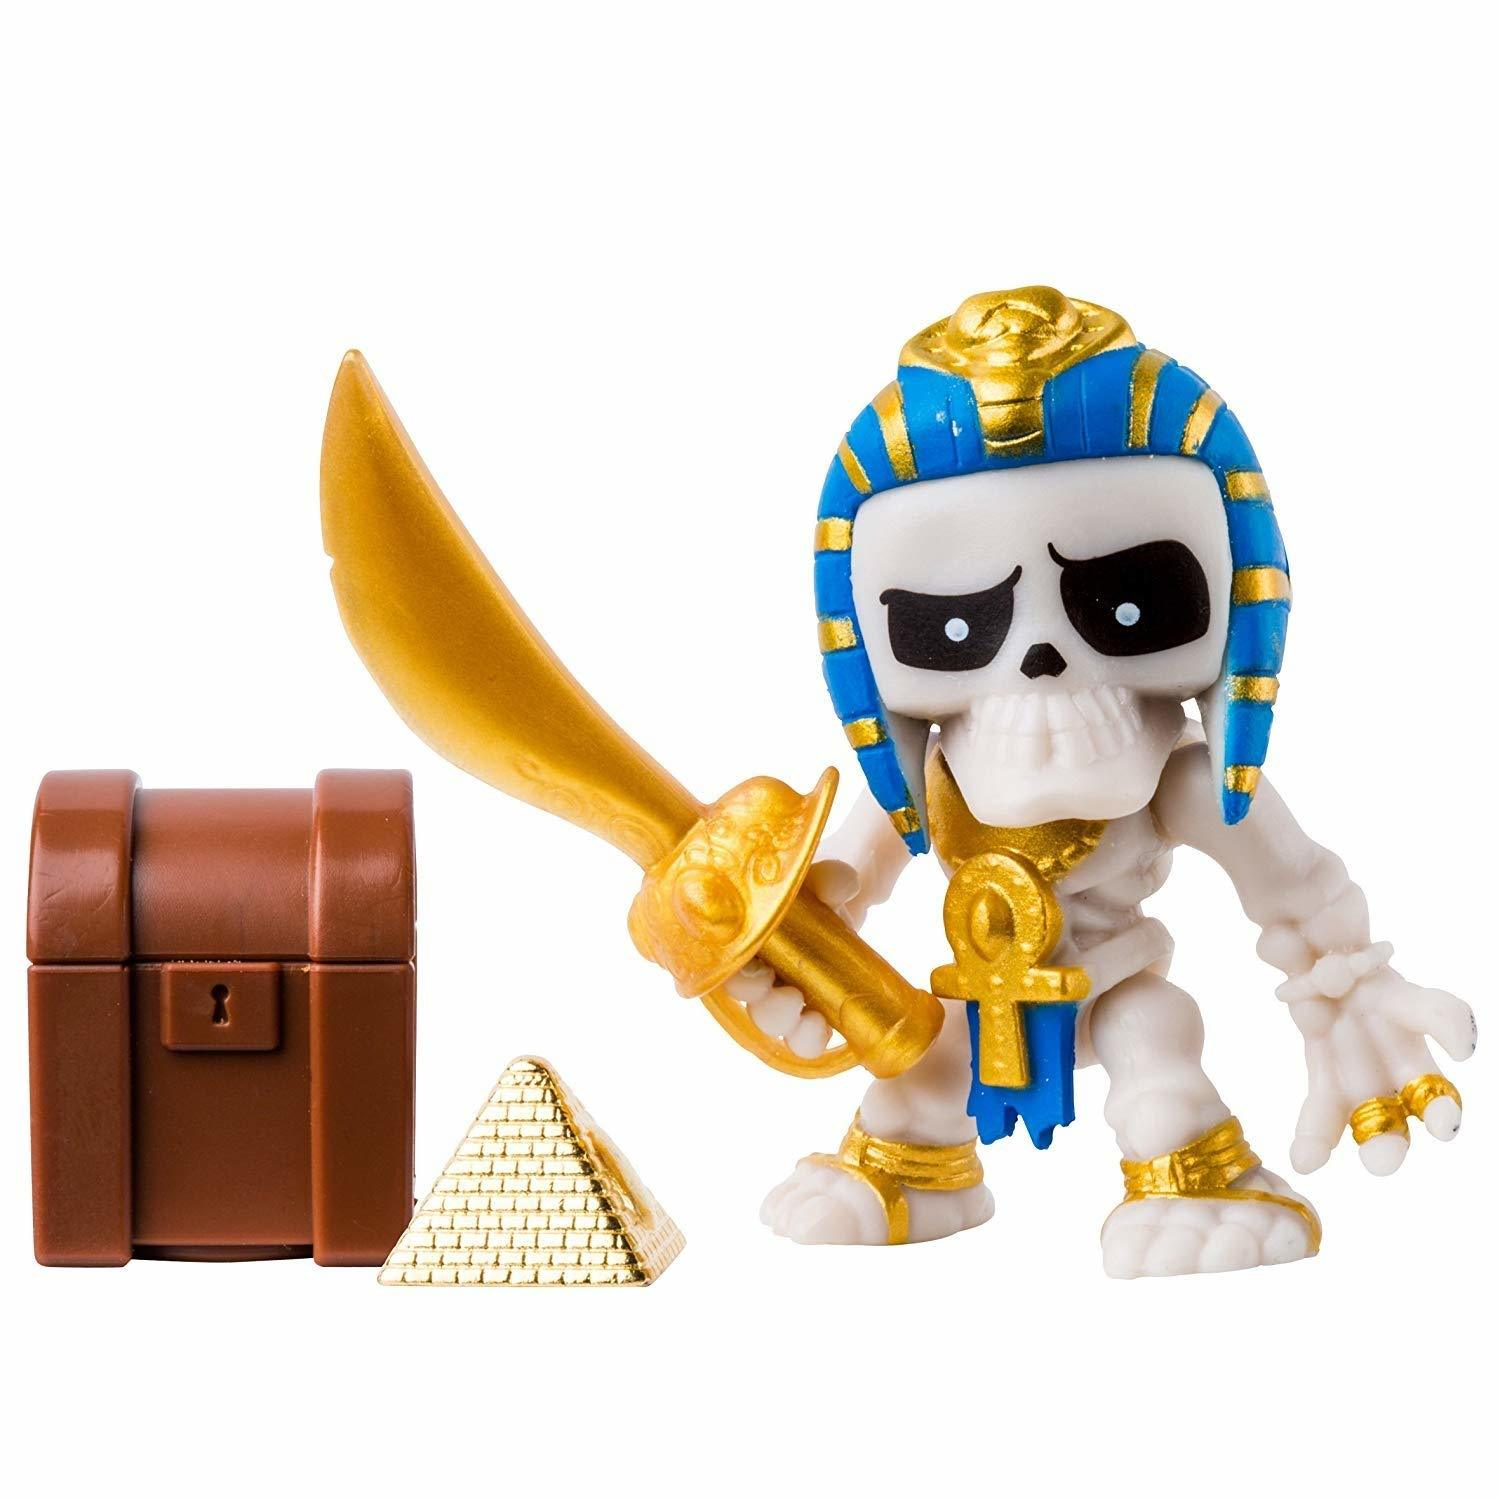 Treasure X Collectable Mini Figure Blind Box Toy